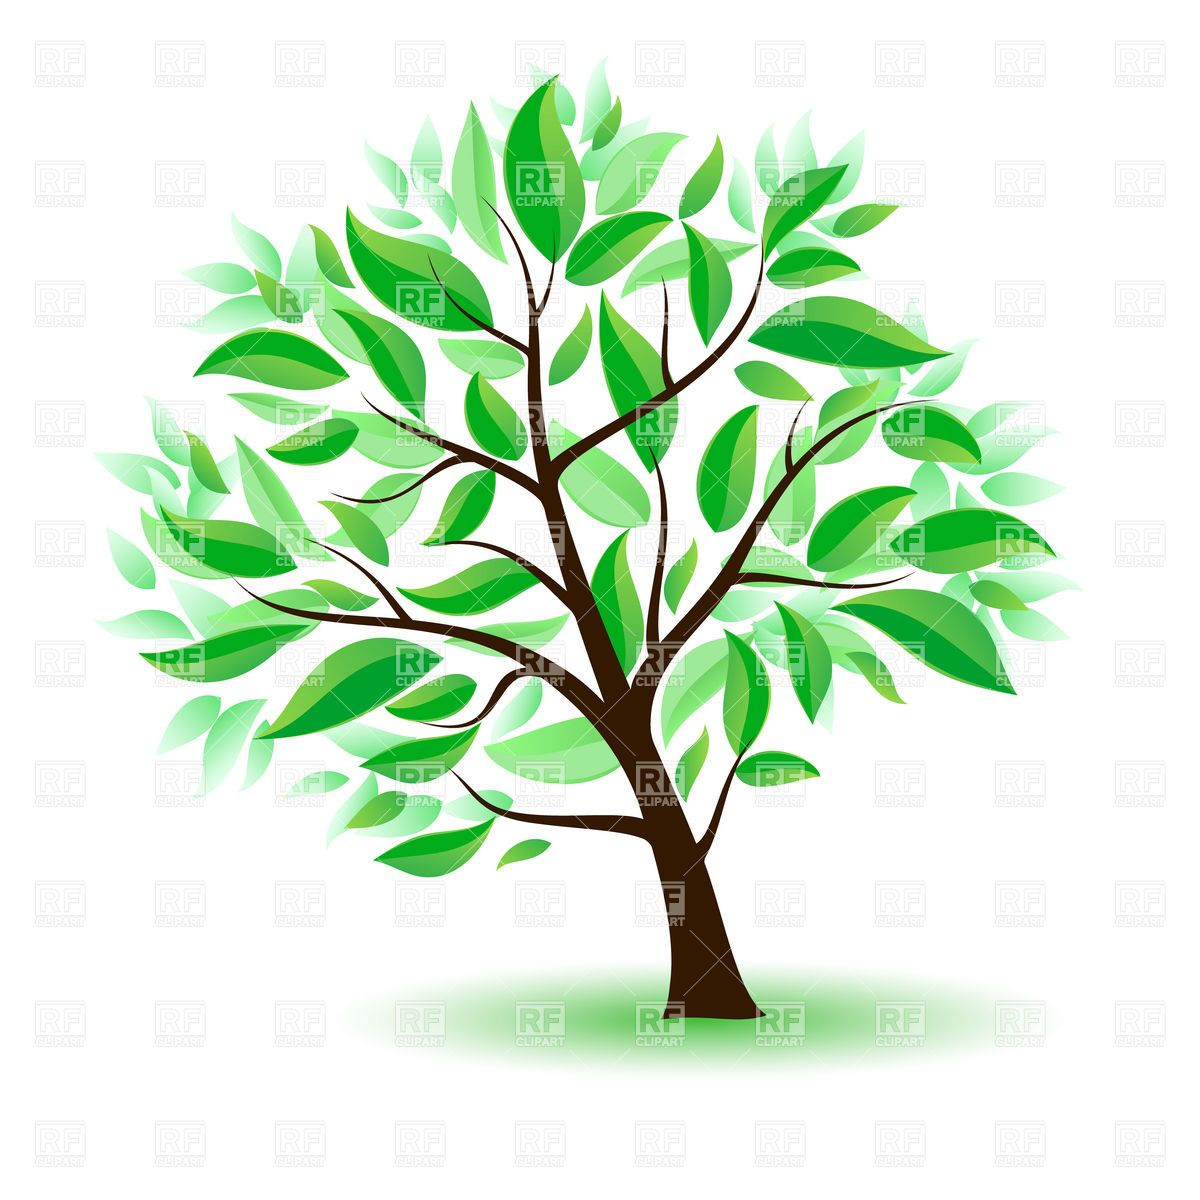 Clipart Tree With Branches And Leaves.